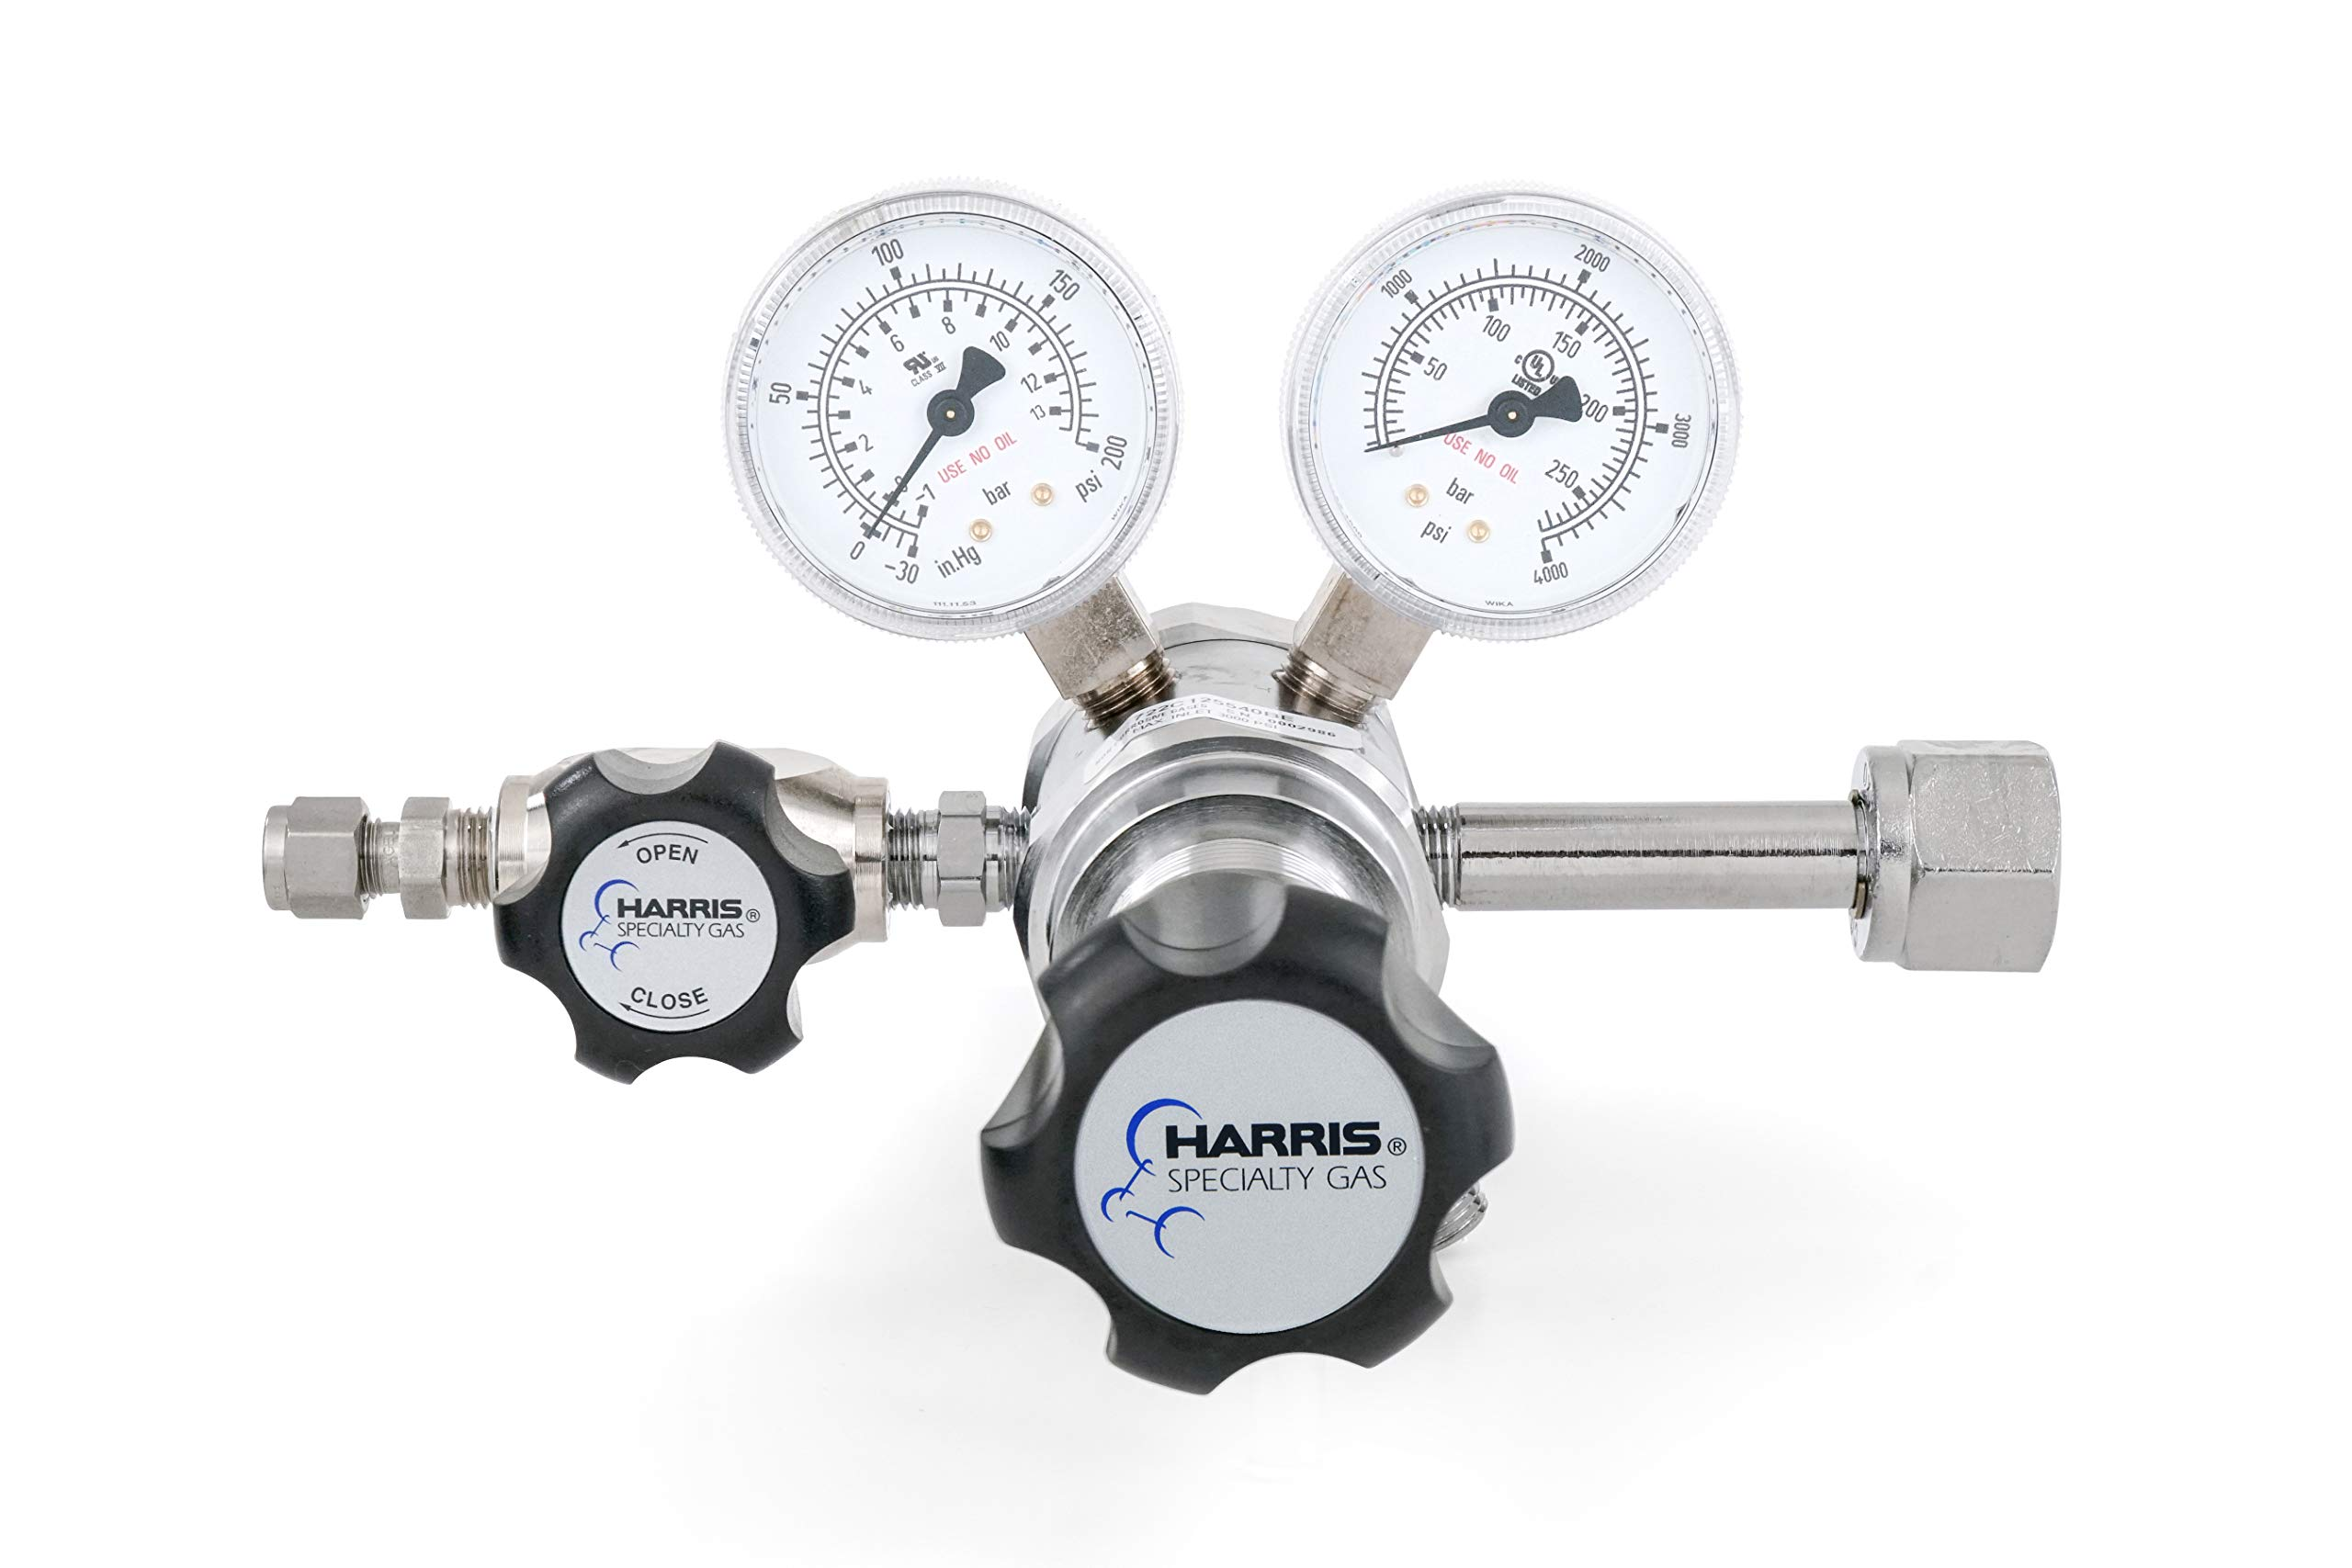 Oxygen specialty gas lab regulator, CGA 540, 2-stage, chrome-plated 0-125 PSI